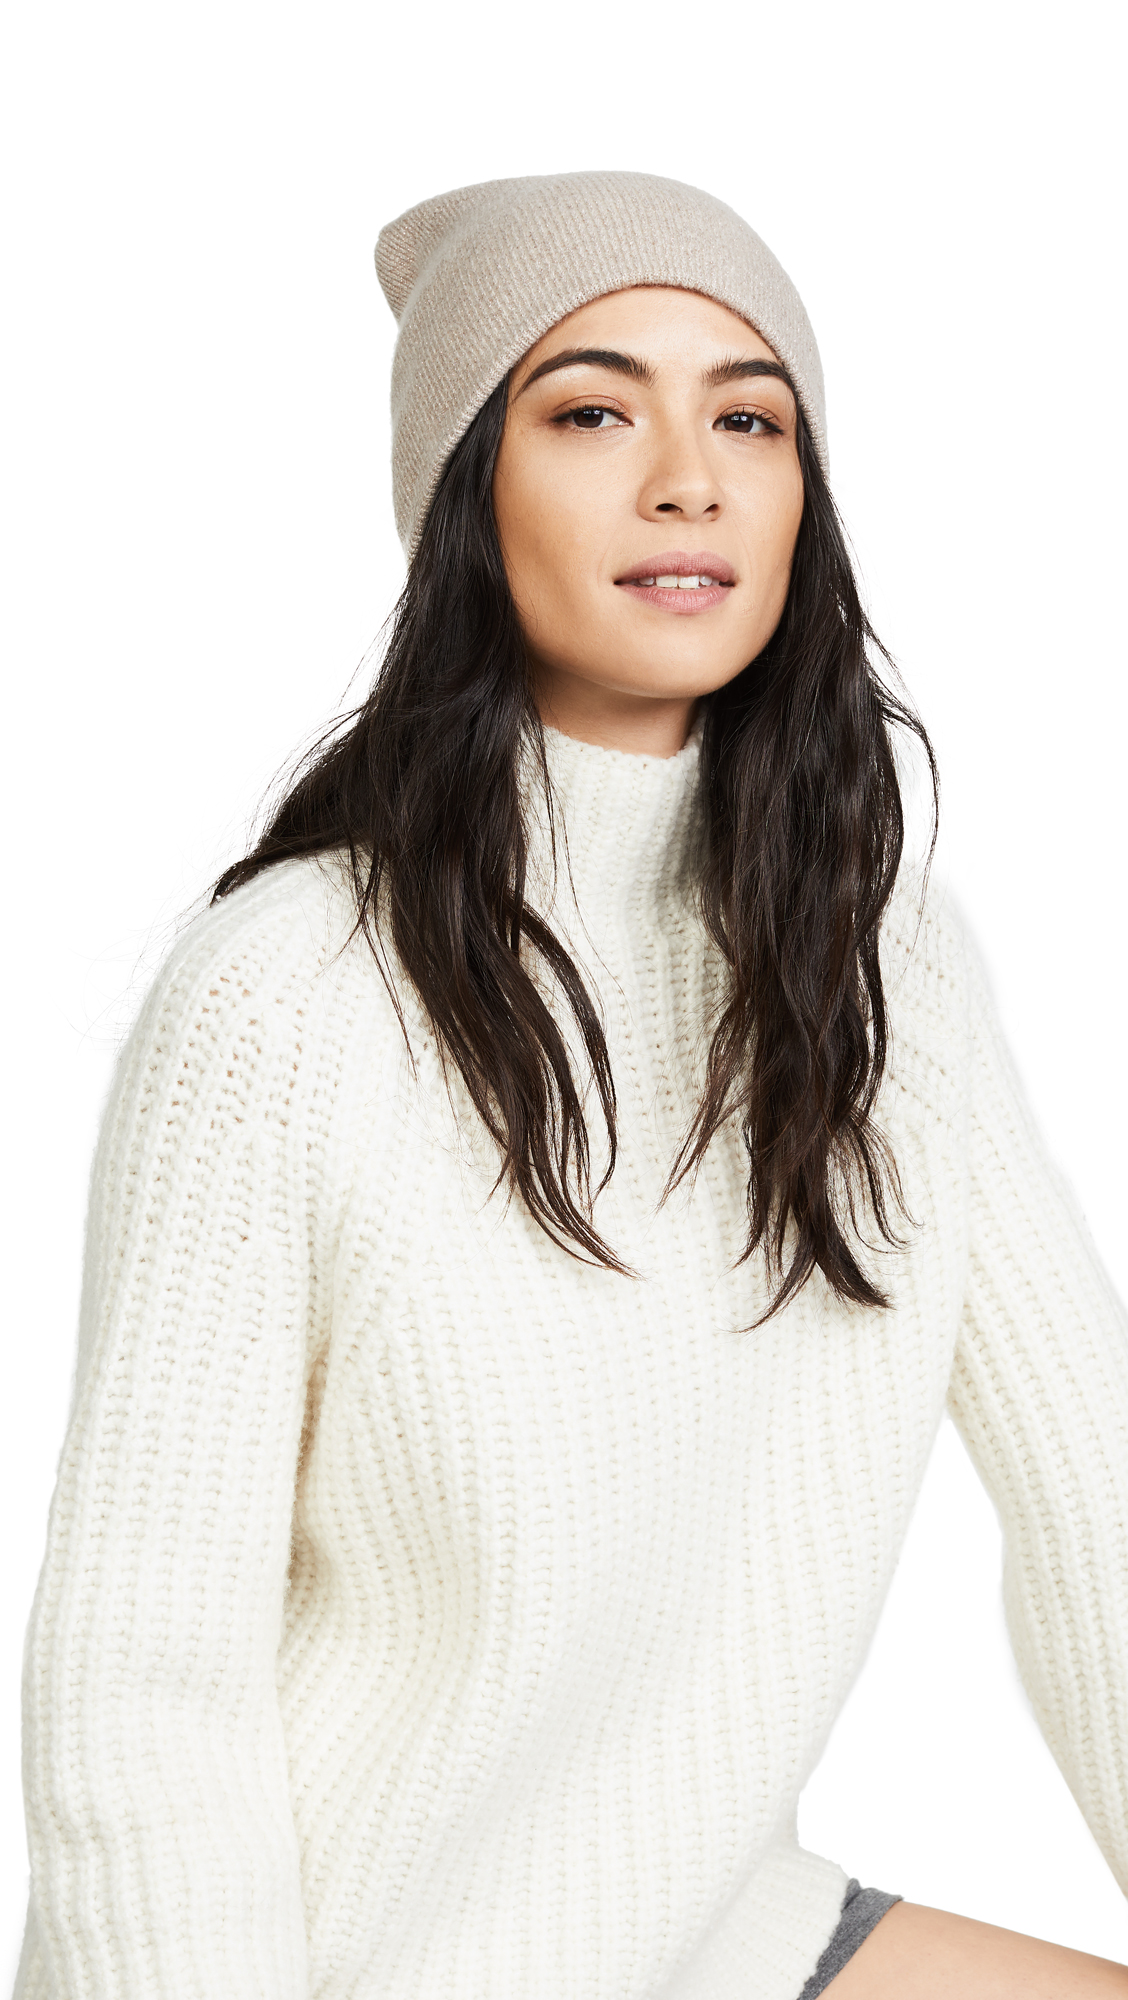 White + Warren Cashmere Shine Pom Pom Cuffed Beanie - Biscuit Shine